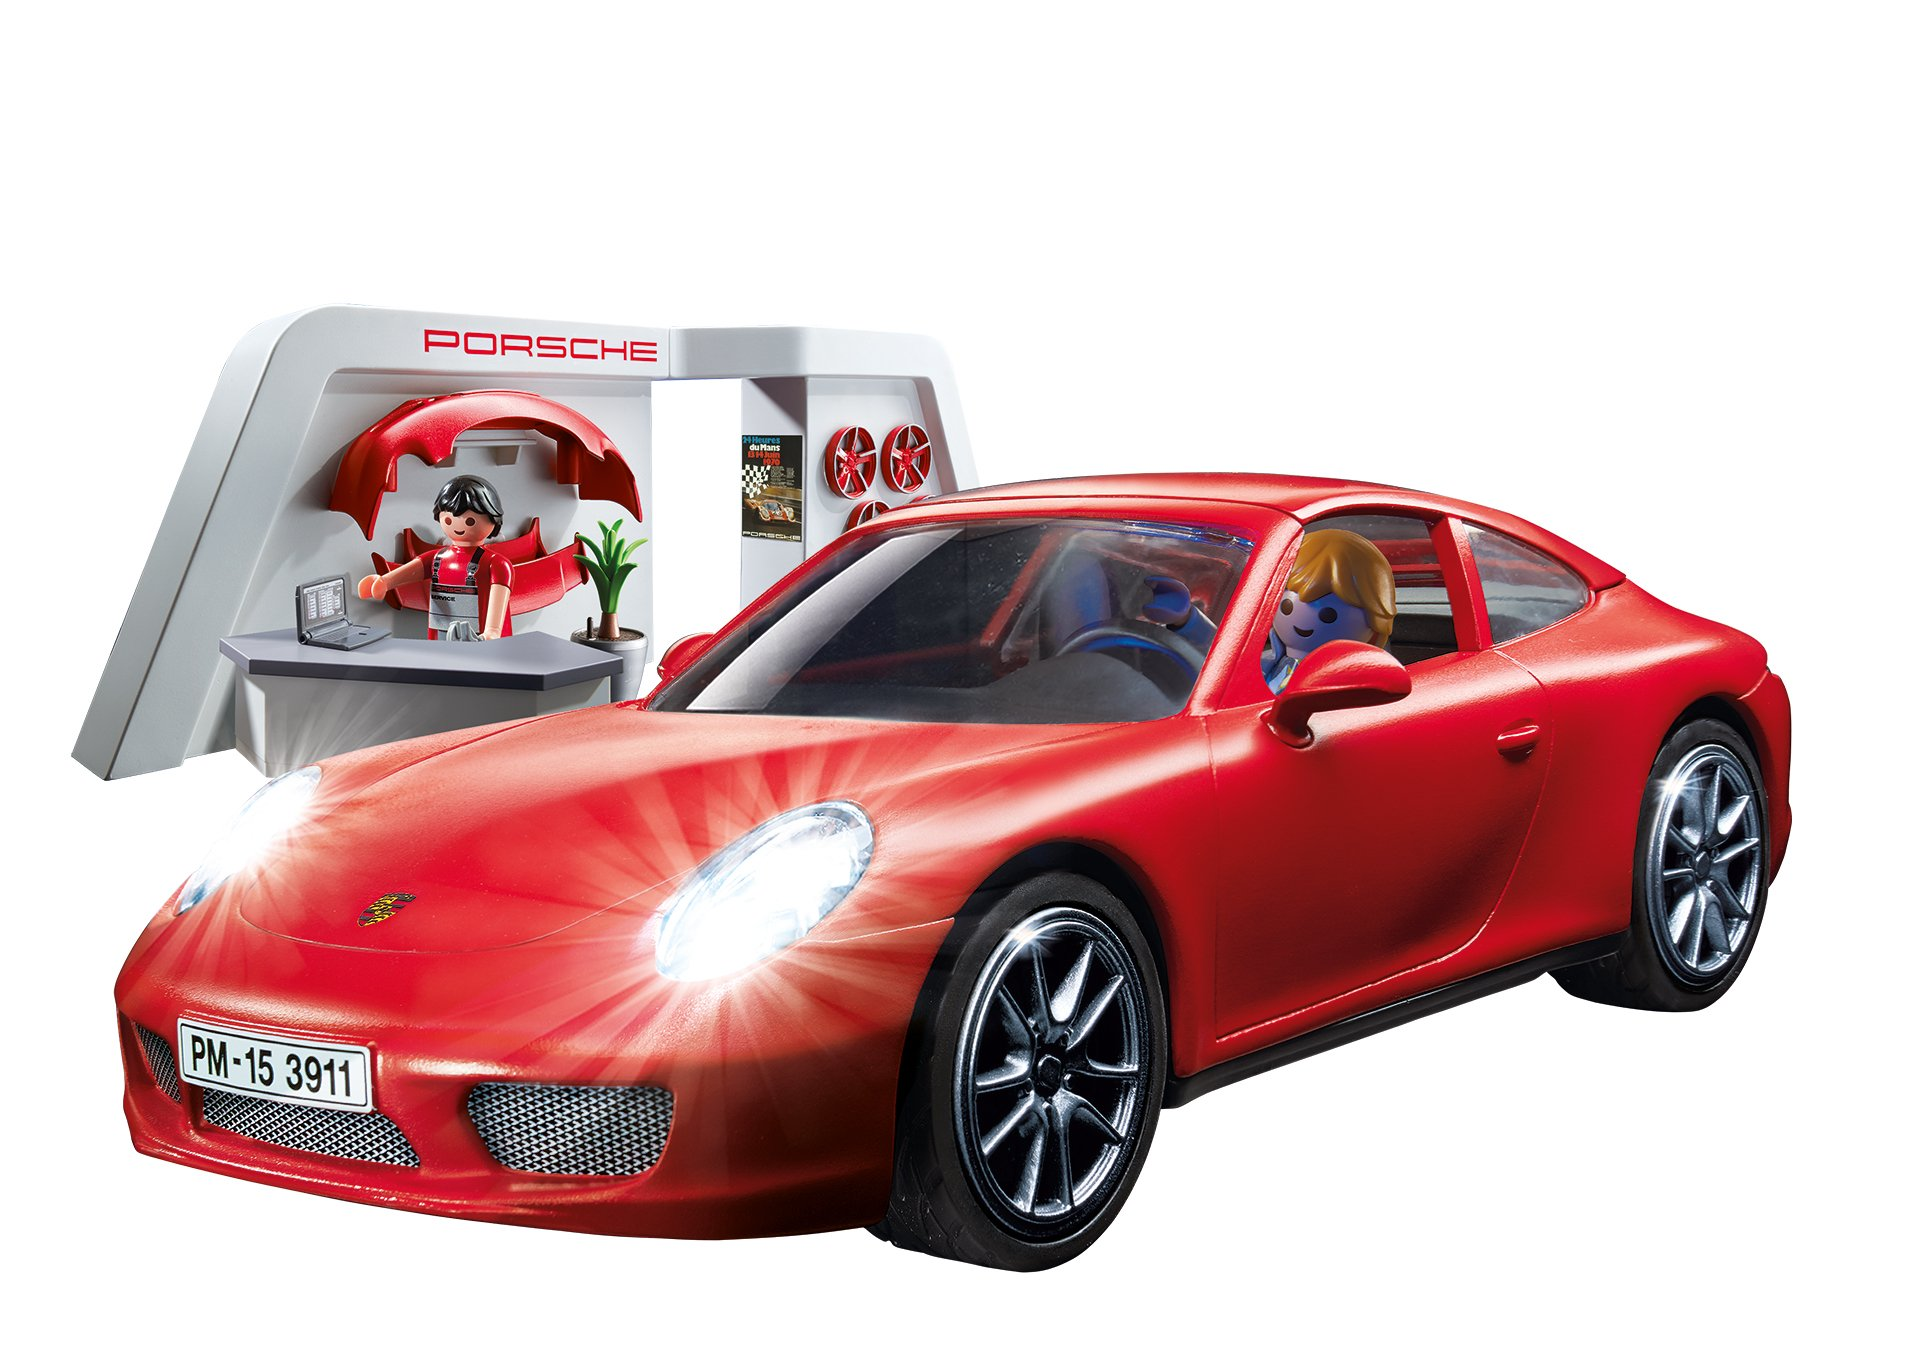 playmobil porsche 911 carrera s ebay. Black Bedroom Furniture Sets. Home Design Ideas